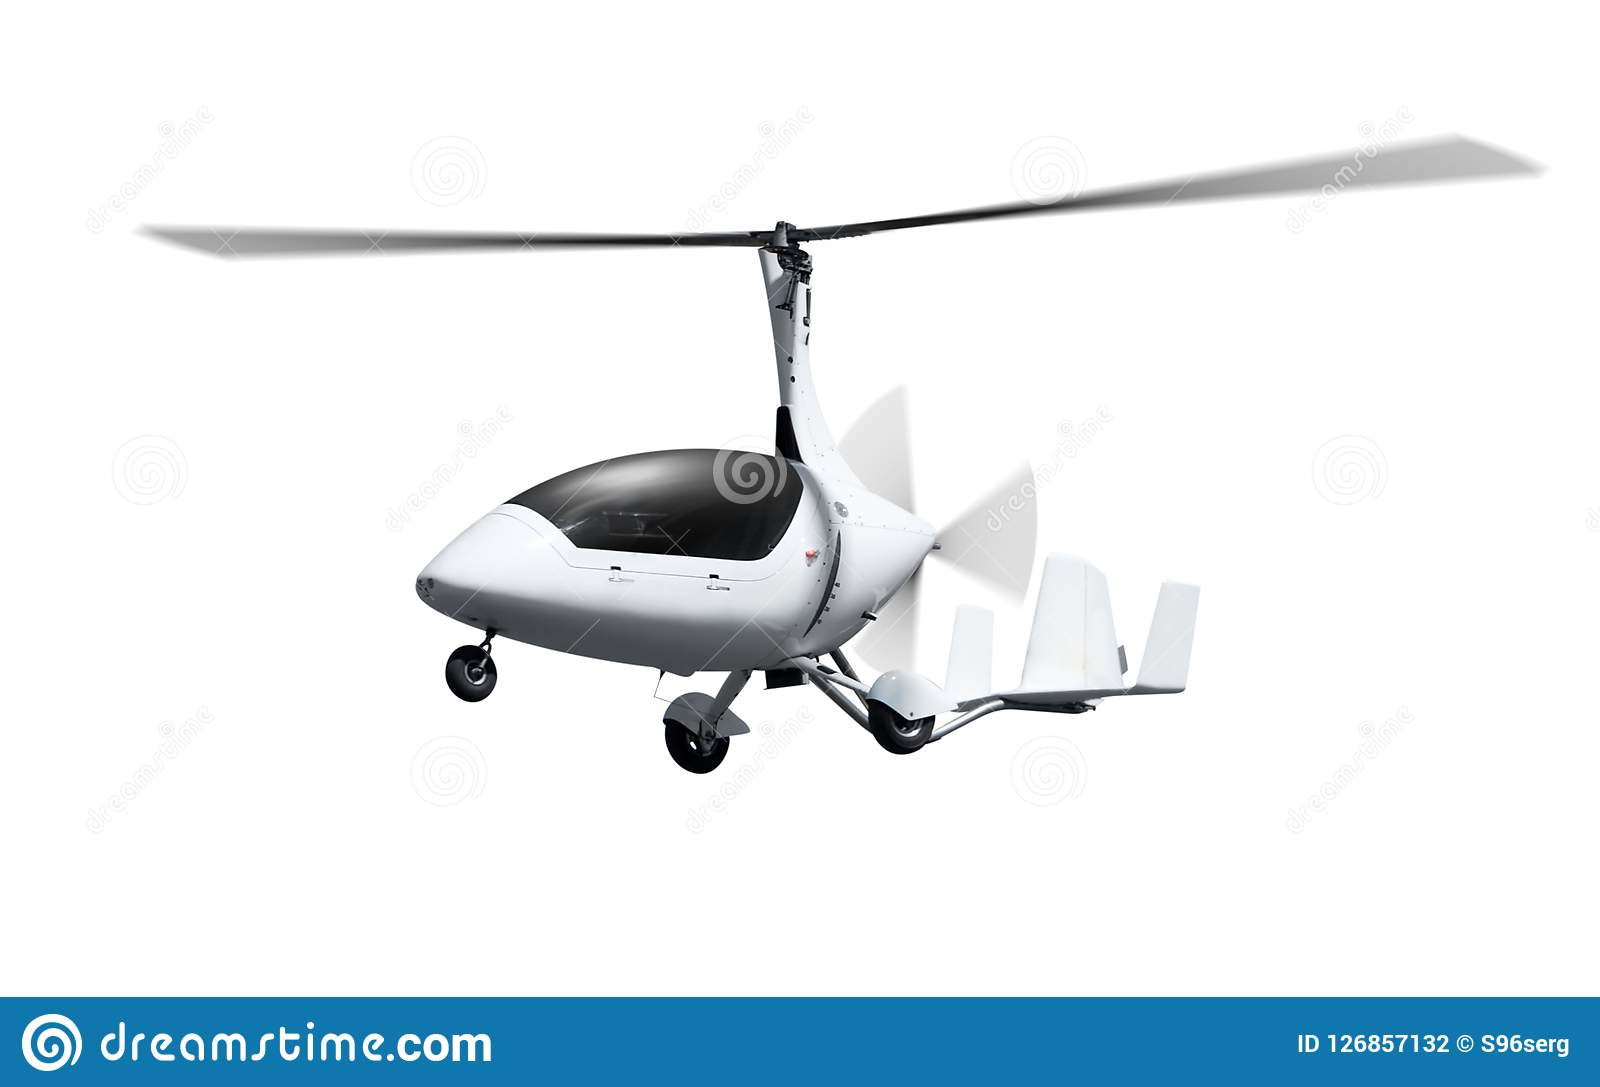 Autogyro In Flight With Rotating Propellers Stock Photo - Image of